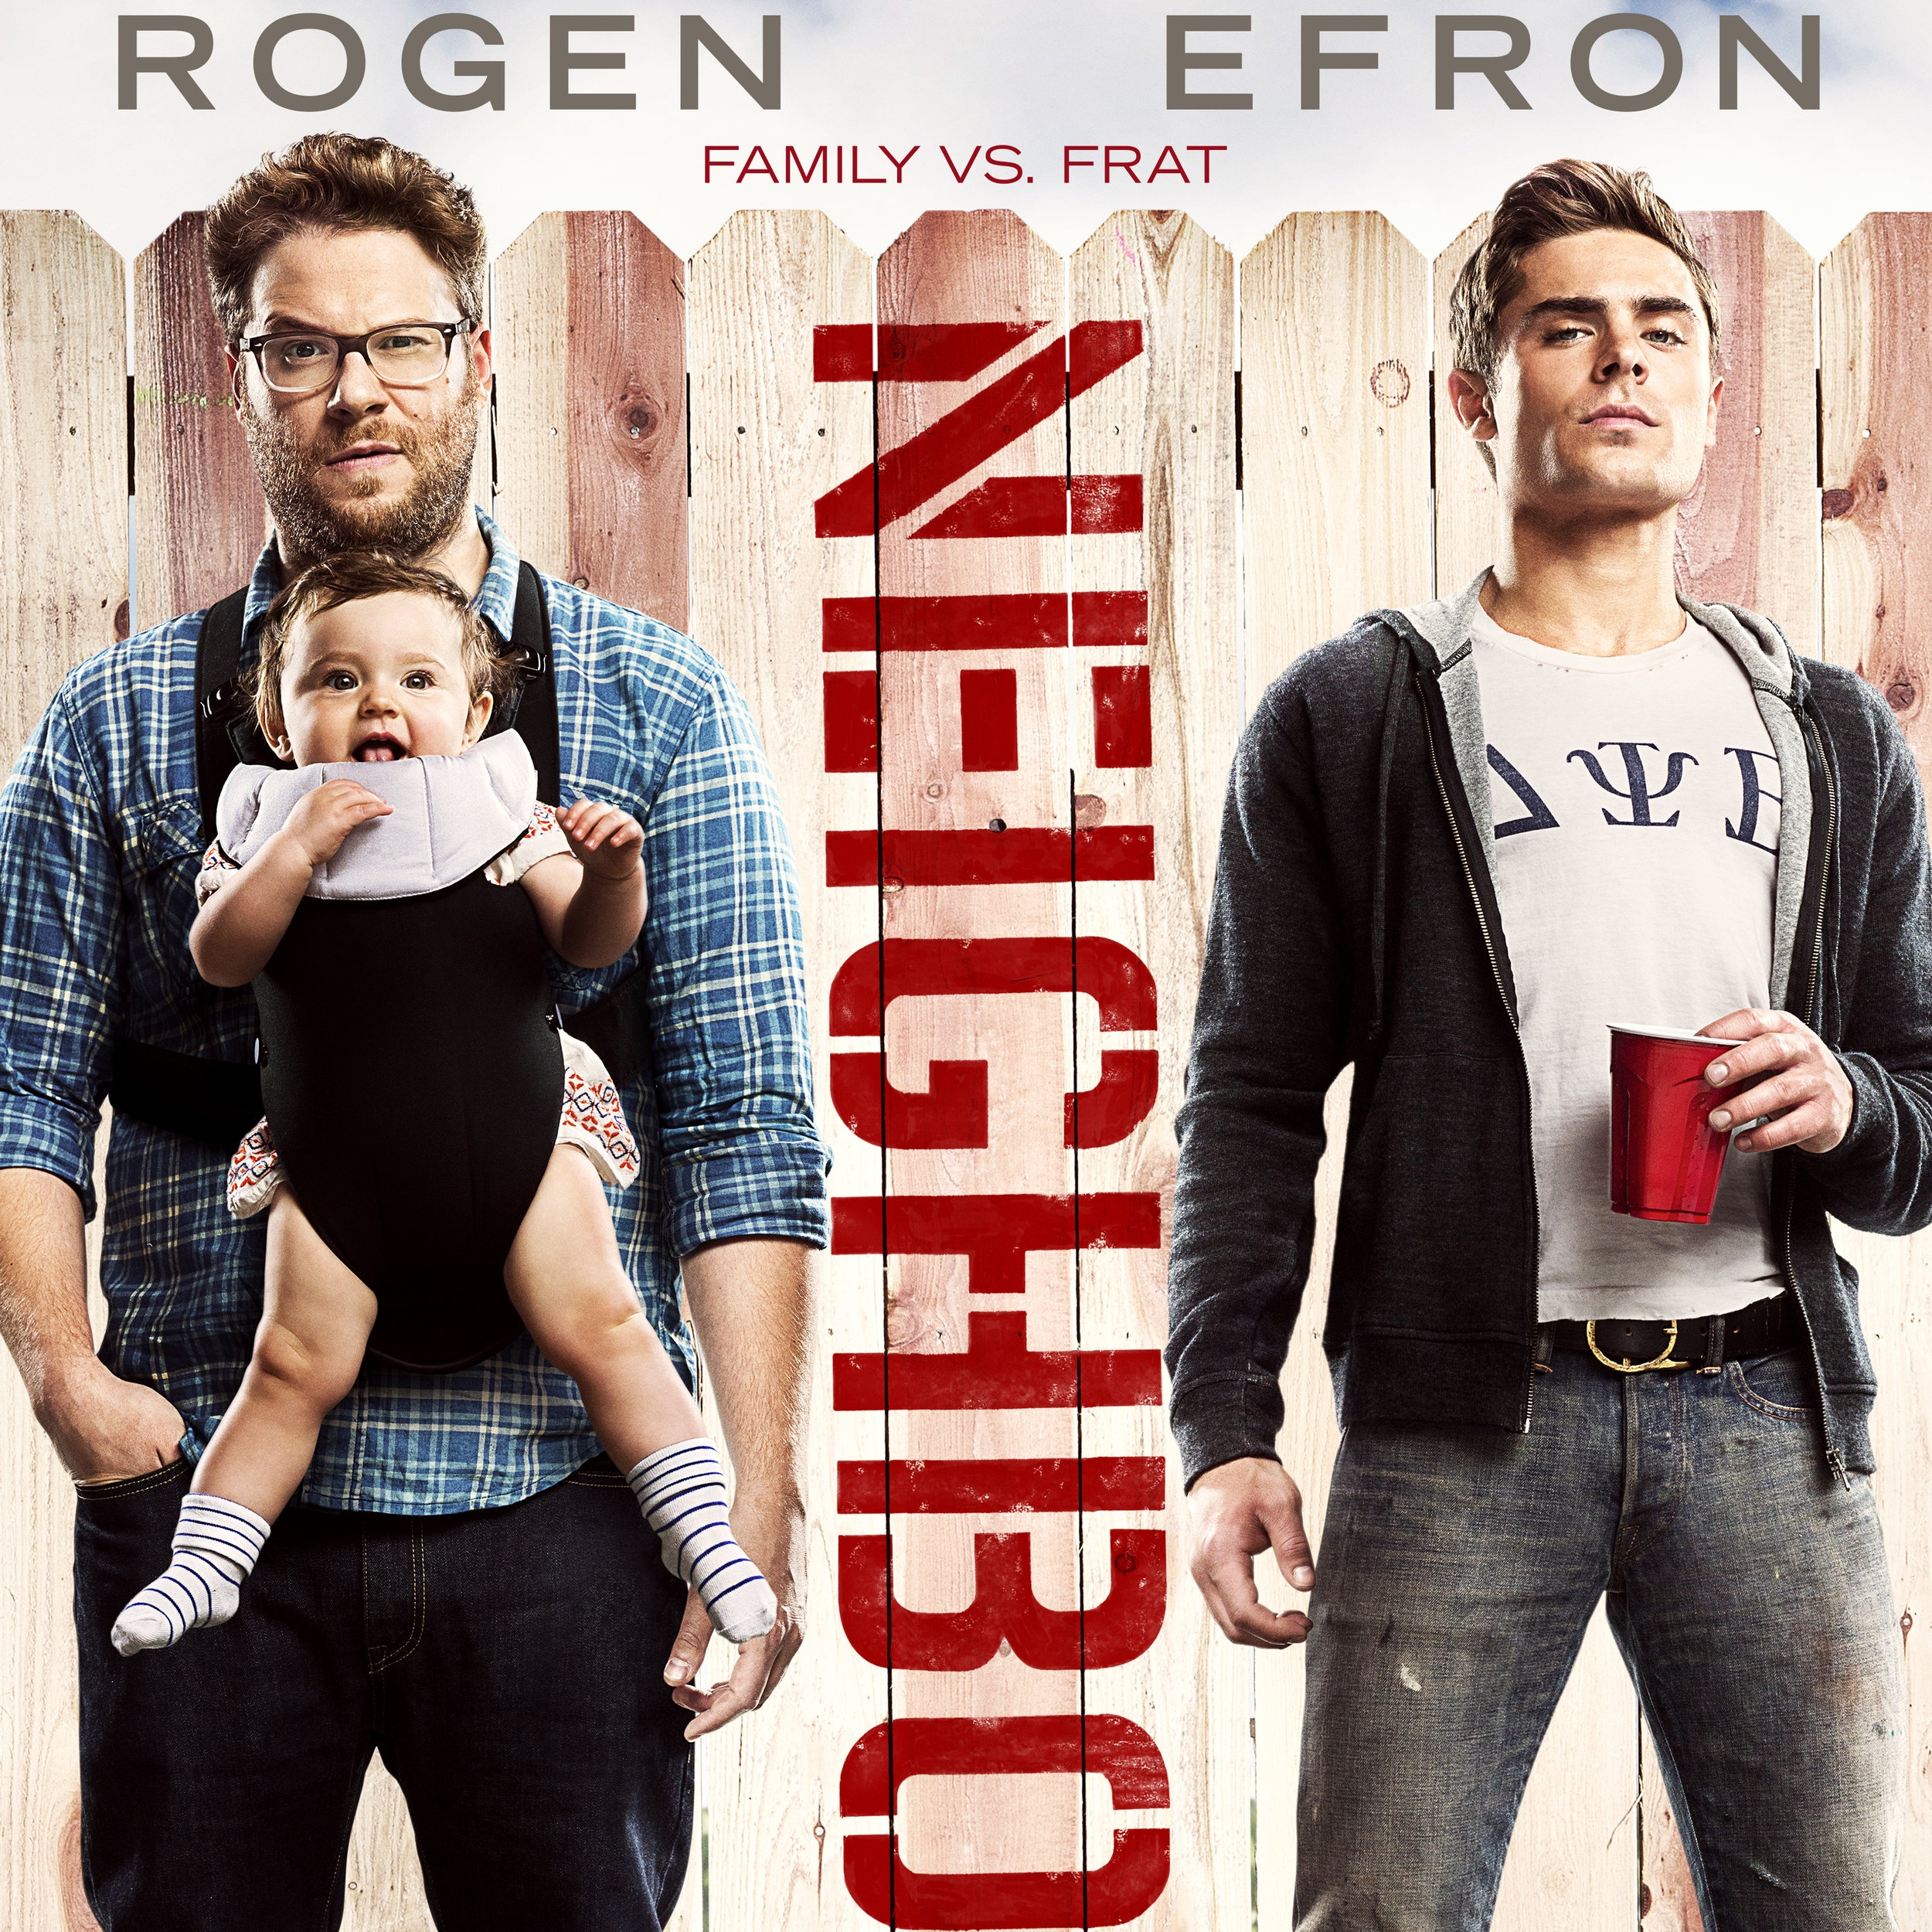 Neighbors - Score Rec, Mix